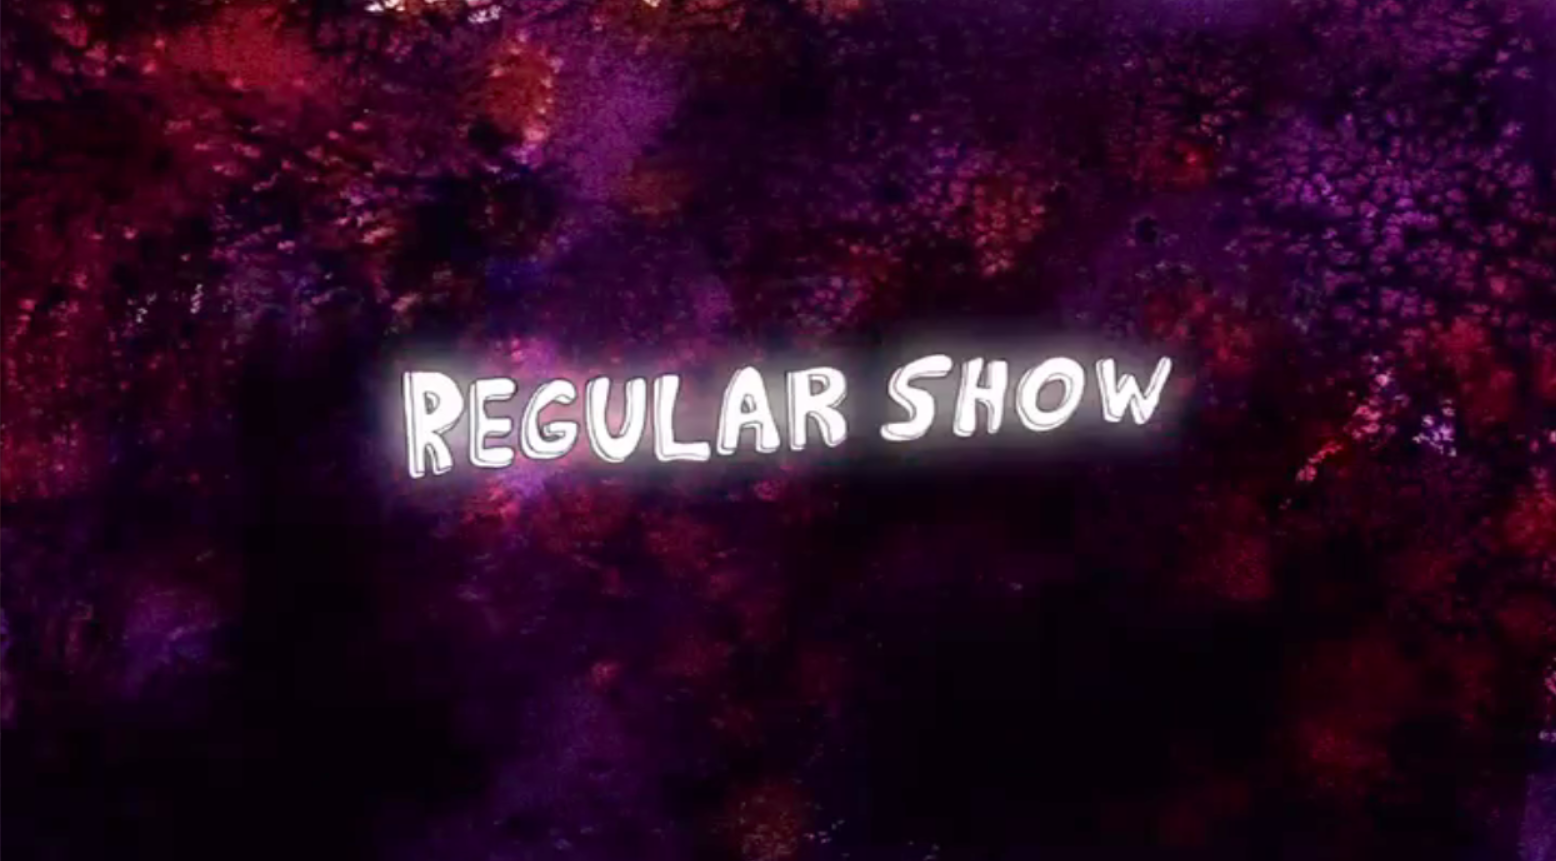 Regular Show Wallpaper And Background Image